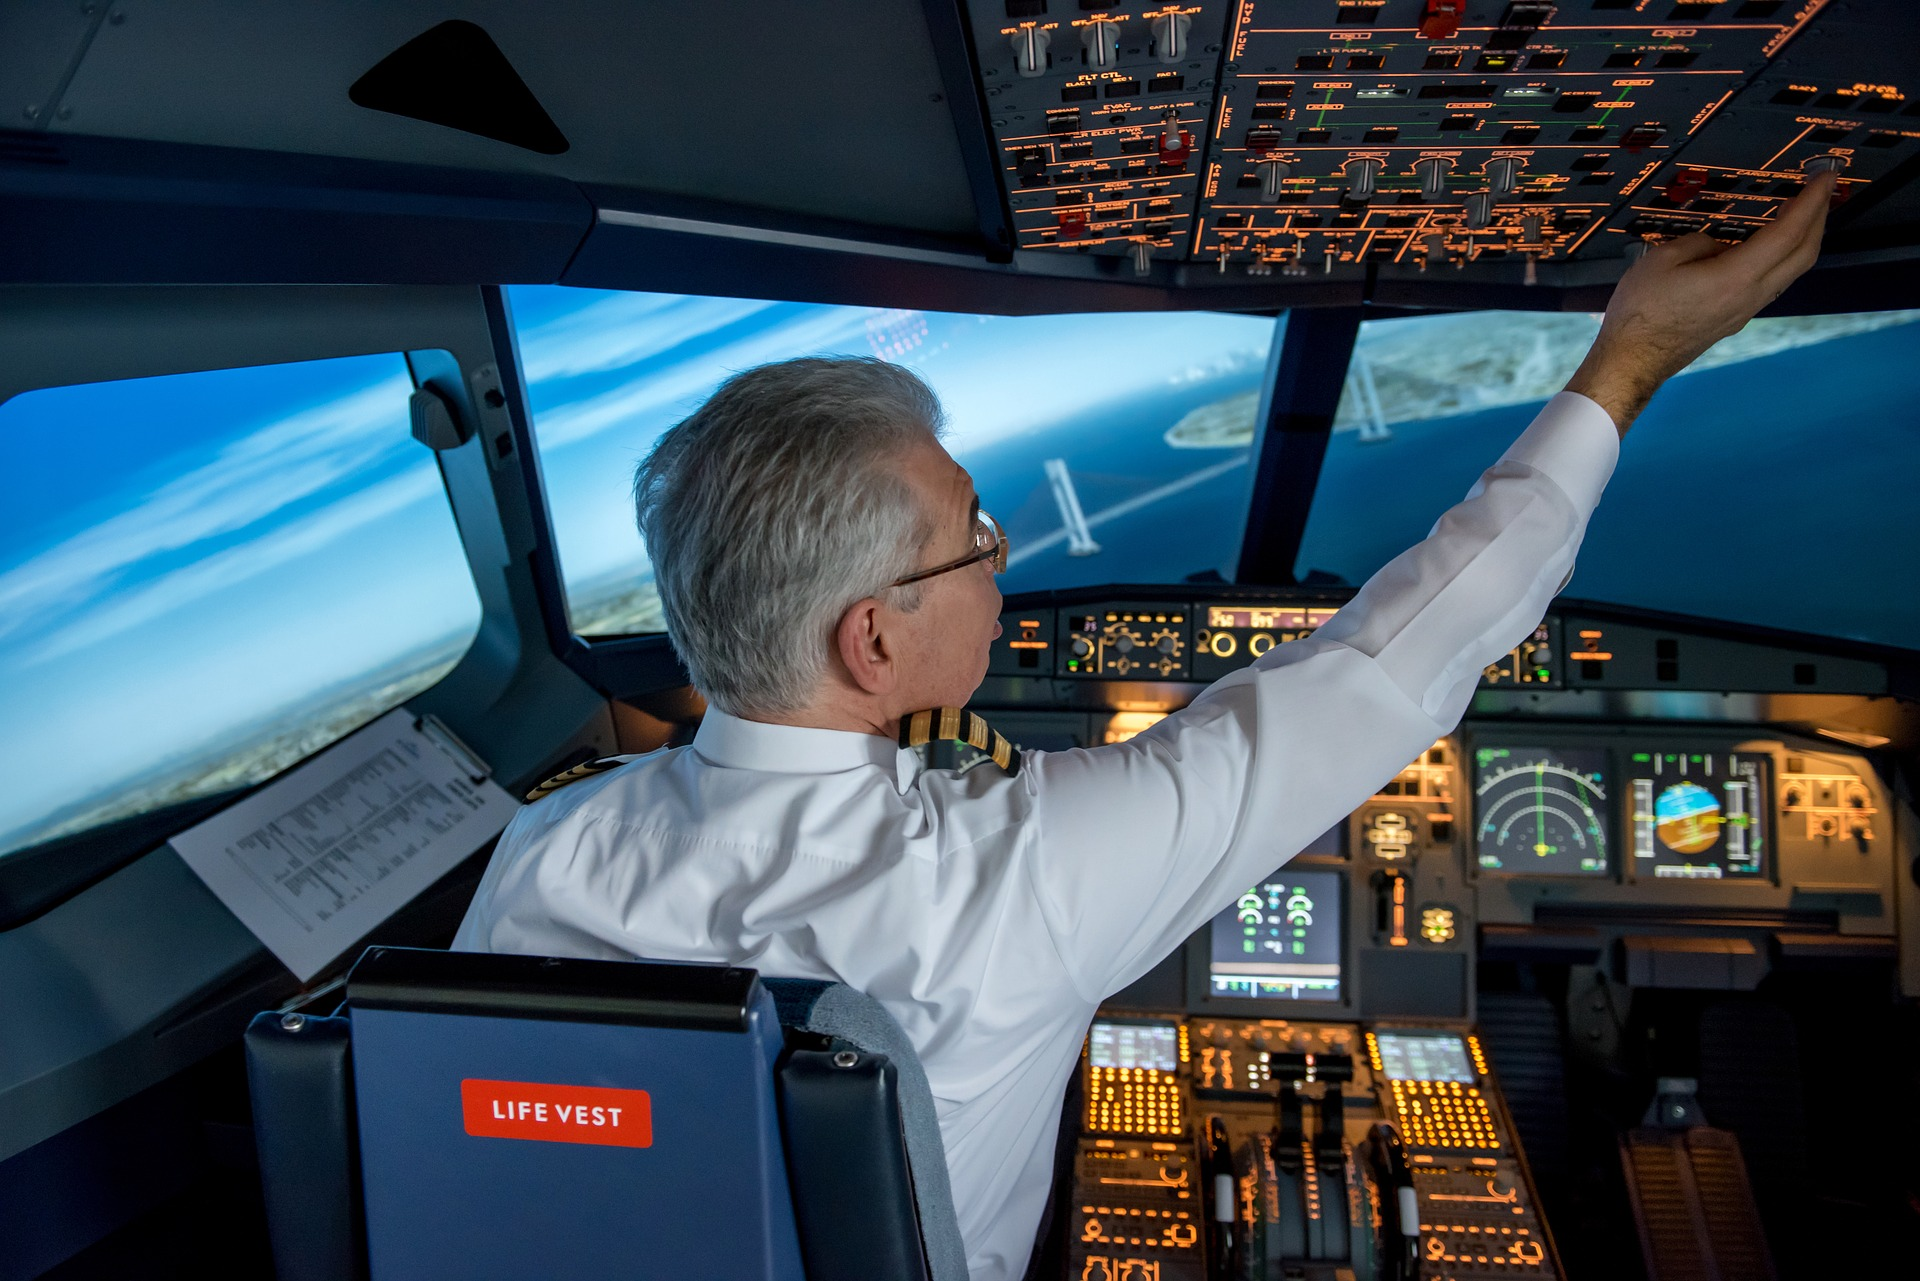 It's just the autopilot that's flying the plane! – WingMag